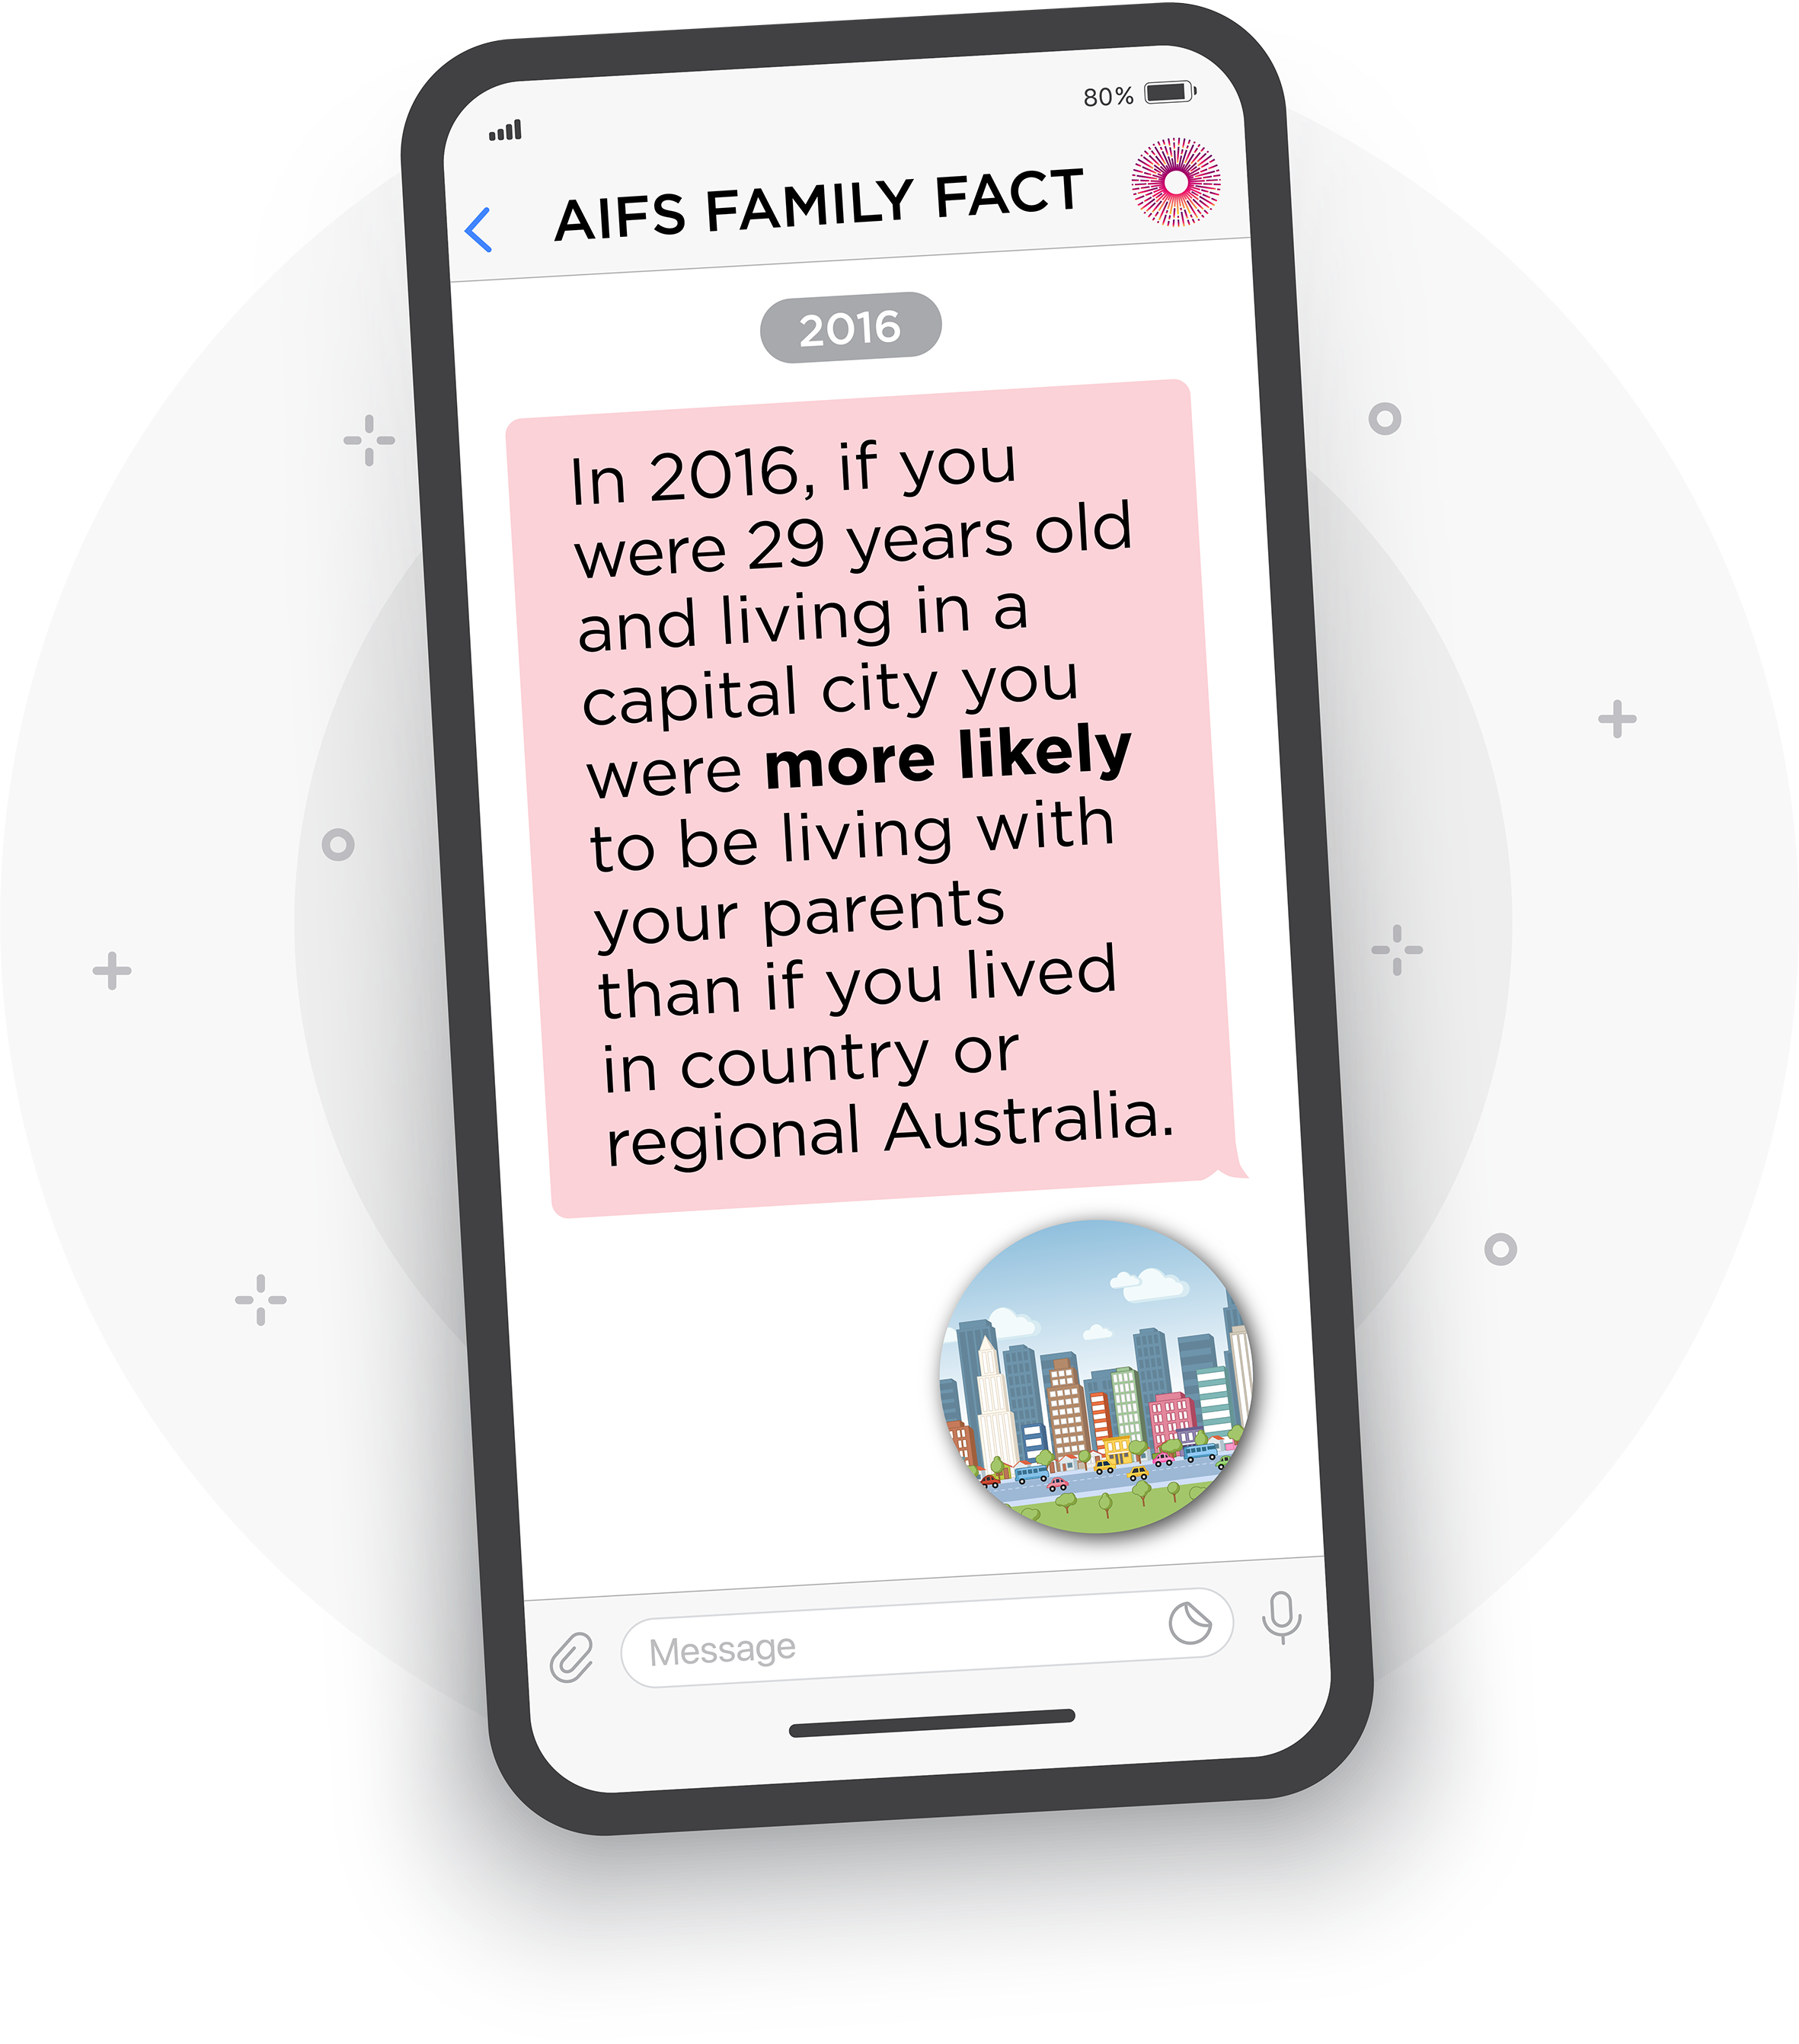 Infographic showing a message on a mobile phone saying in 2016, if you were 29 years old and living in a capital city you were more likely to be living with your parents than if you lived in a country or regional Australia